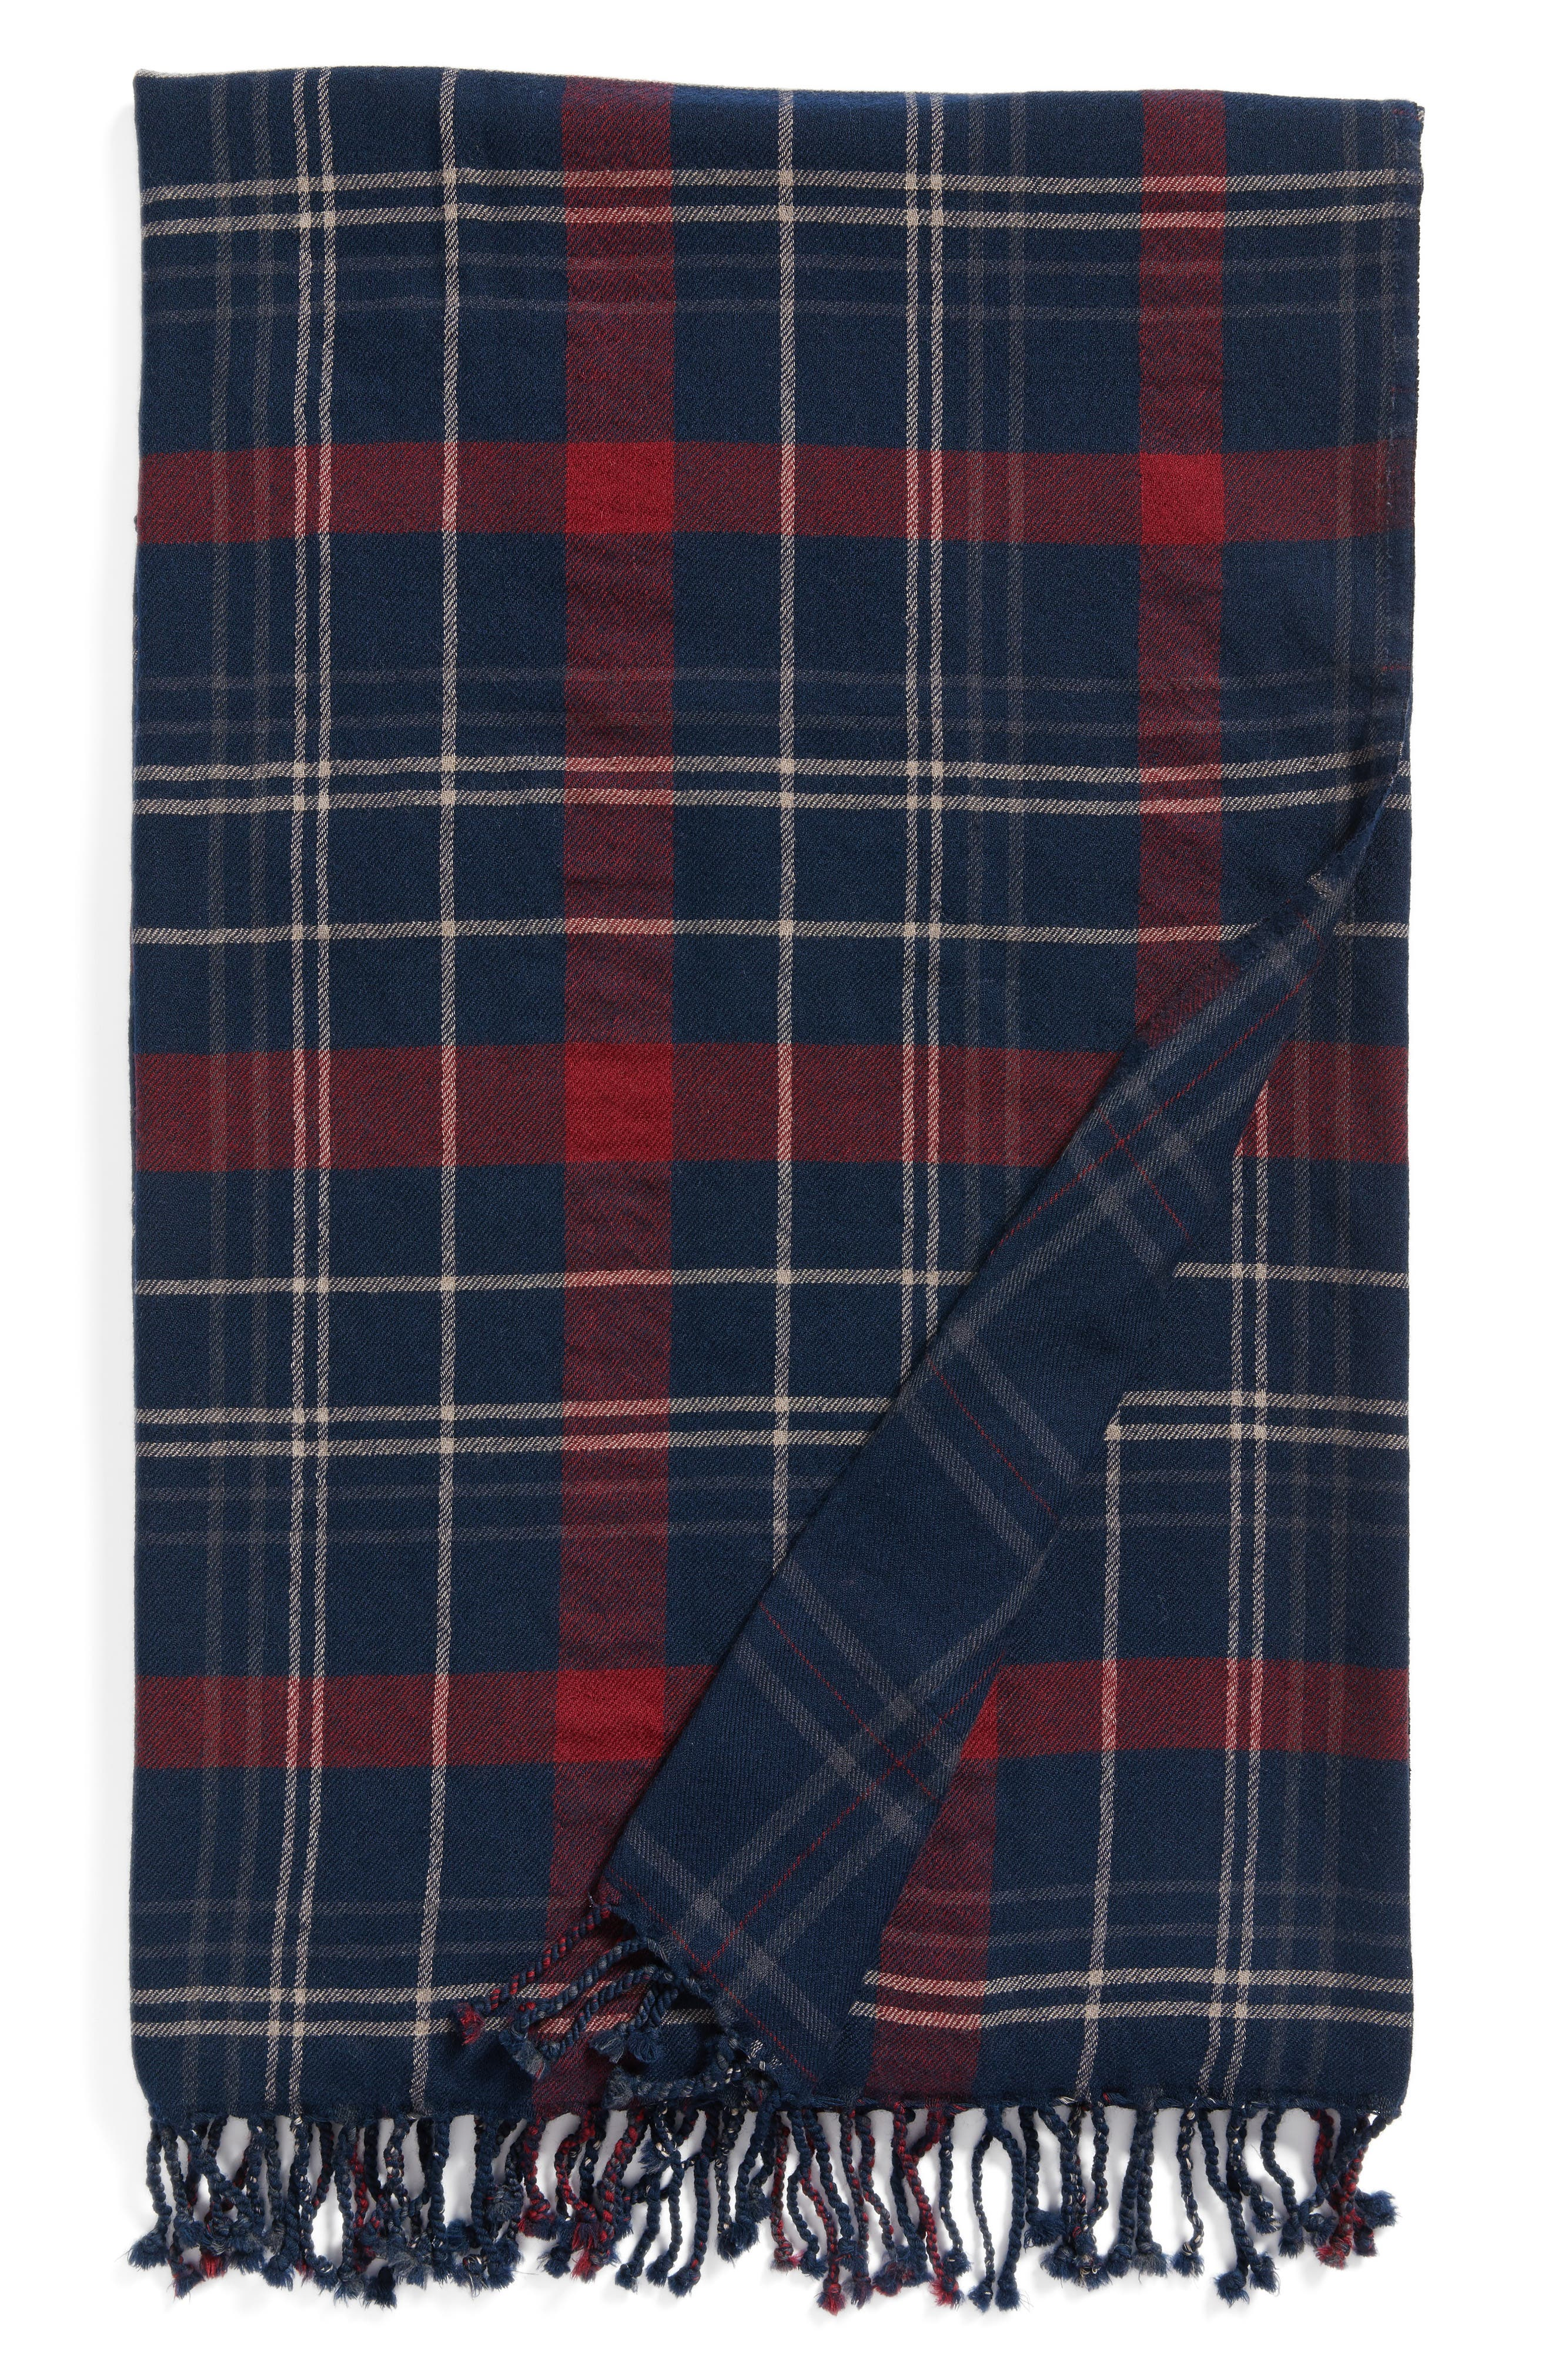 Tartan Double Face Merino Wool Throw,                             Main thumbnail 1, color,                             NAVY MAROON TARTAN